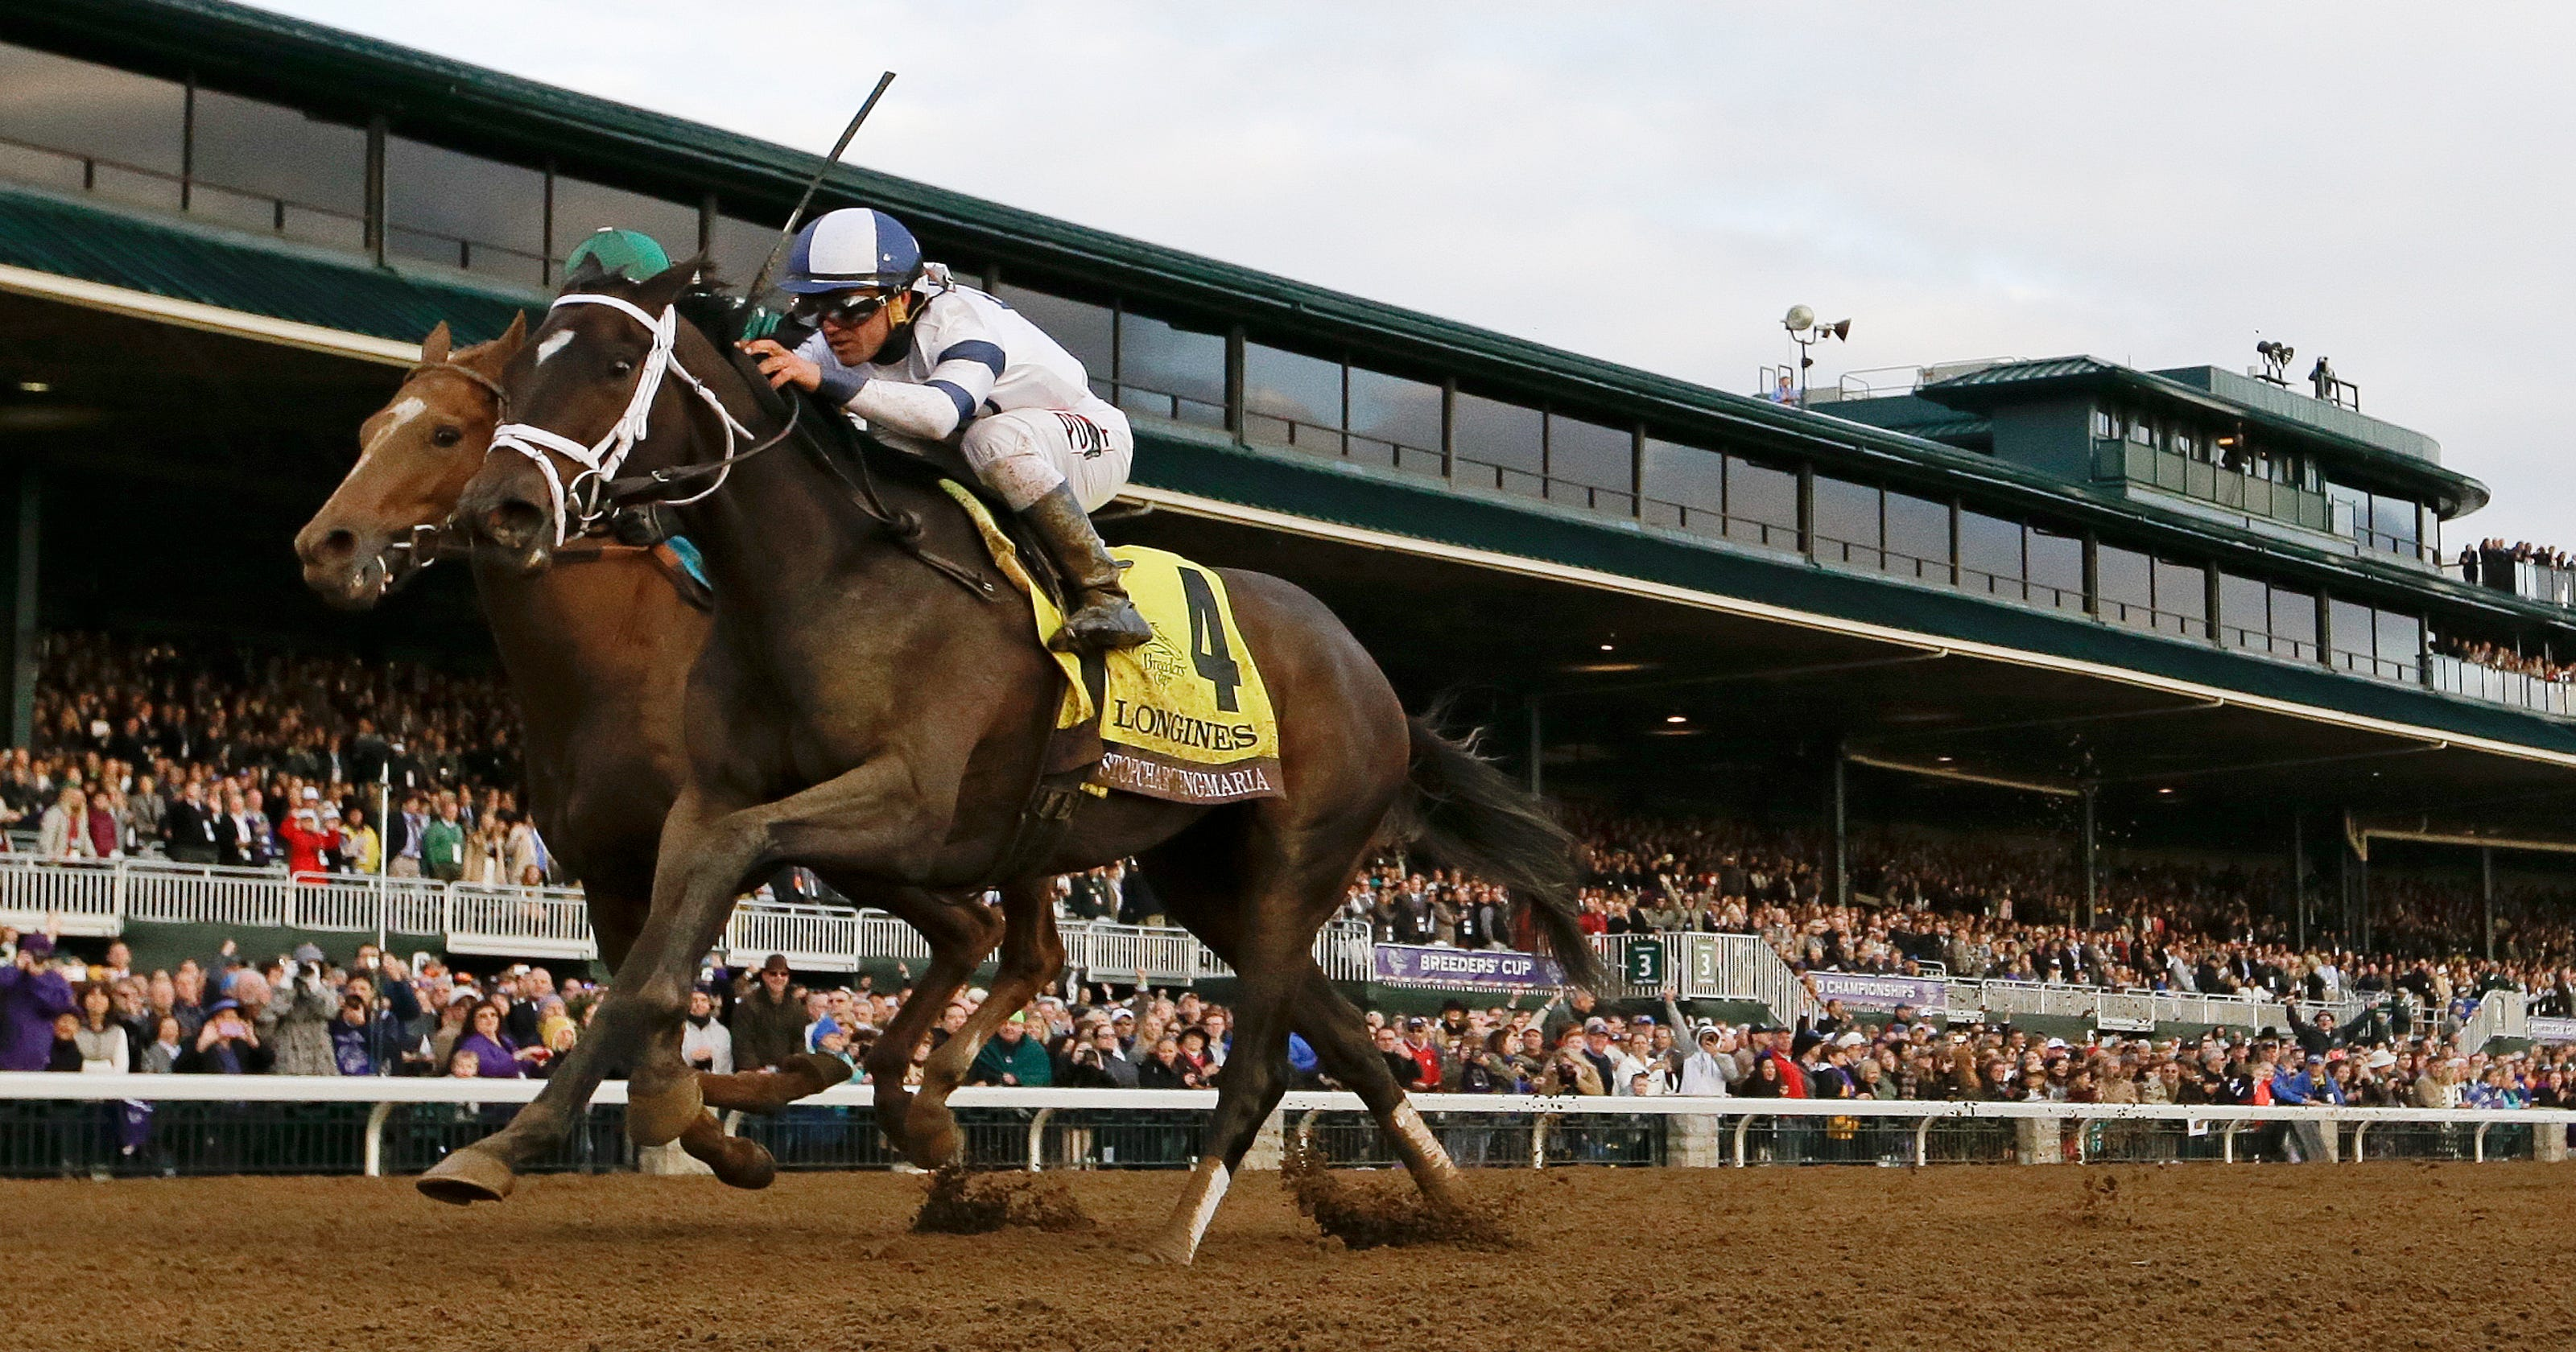 Breeders Cup At Keeneland Sets Friday Attendance Record